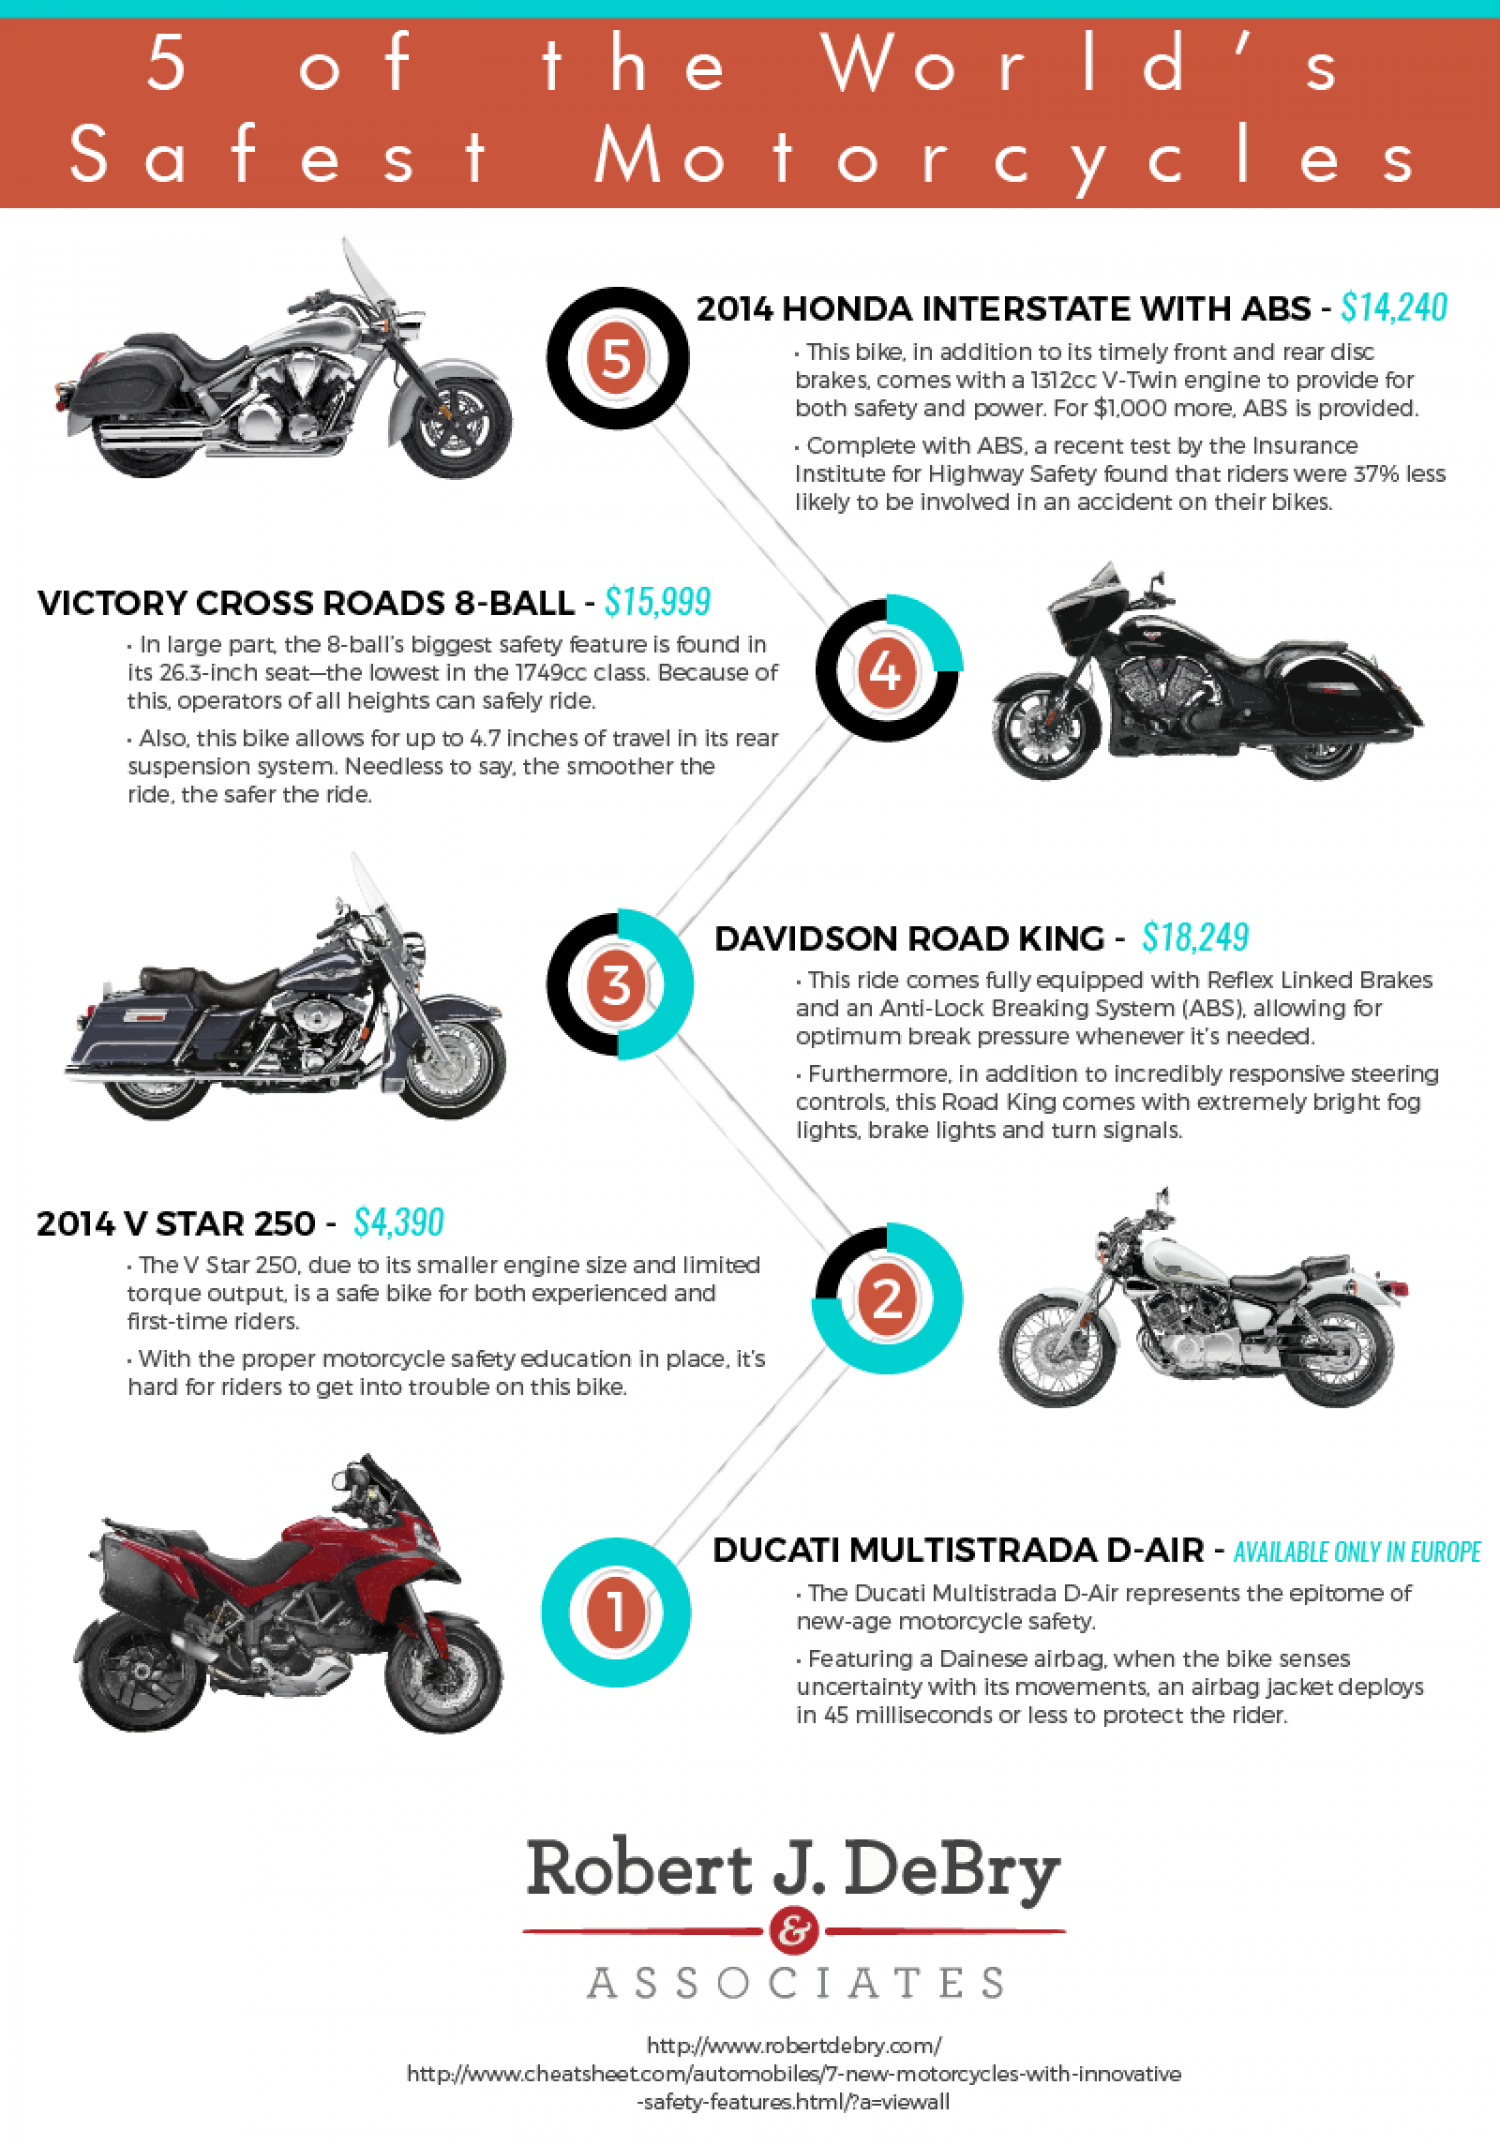 5 of the World's Safest Motorcycles Infographic